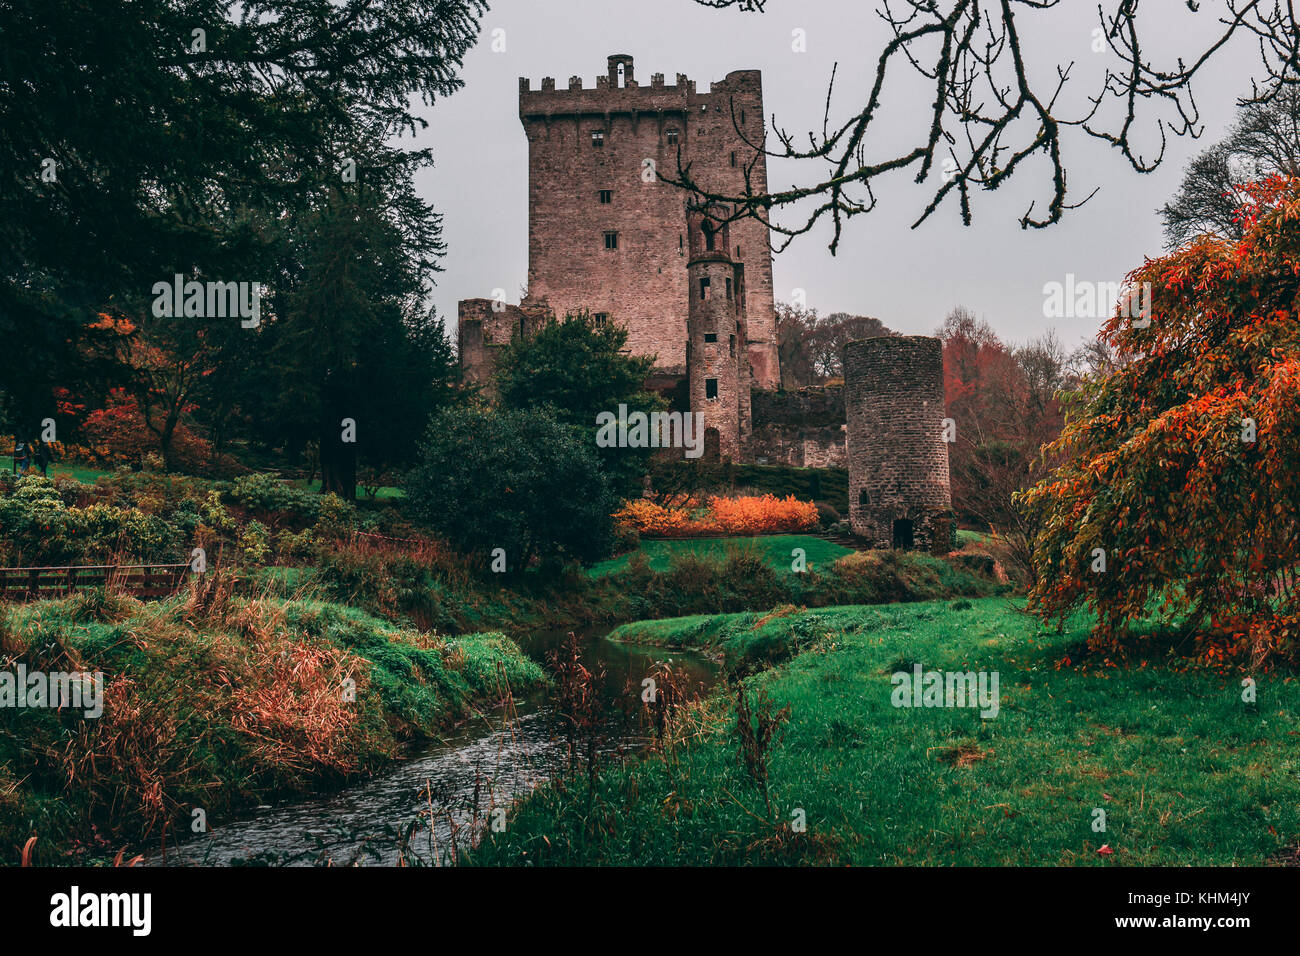 Blarney, Ireland - Blarney Castle, a medieval stronghold in Blarney, near Cork, Ireland, and the River Martin - Stock Image